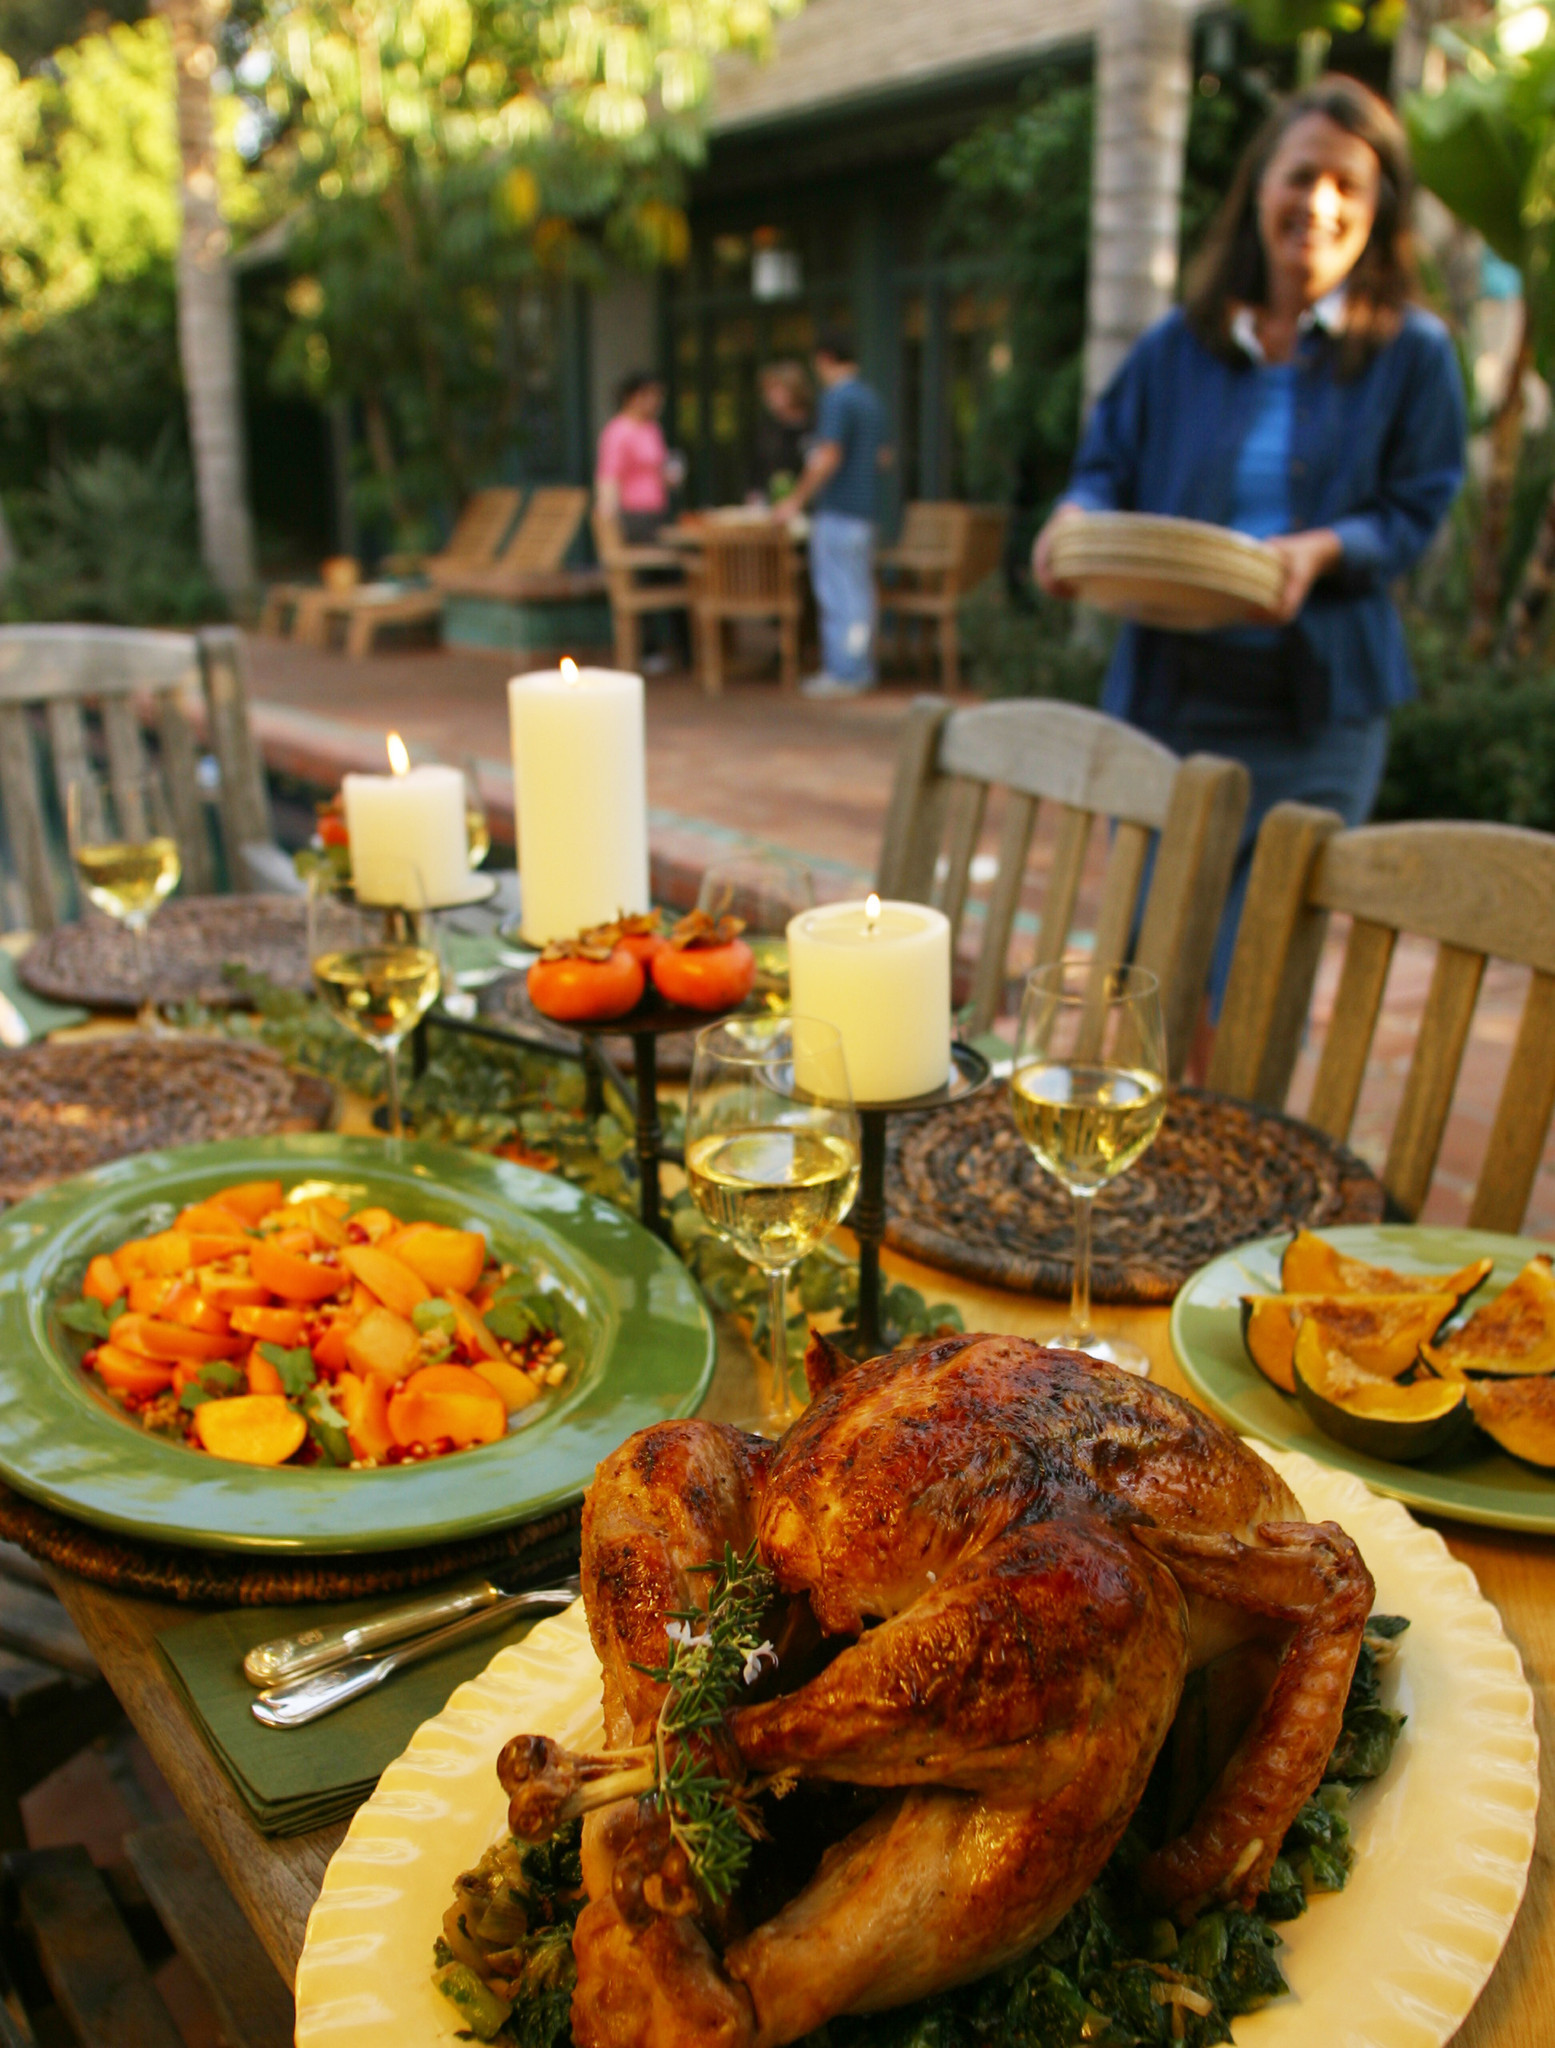 Photos: 97 great Thanksgiving recipes - Rosemary-Meyer lemon turkey with wilted escarole